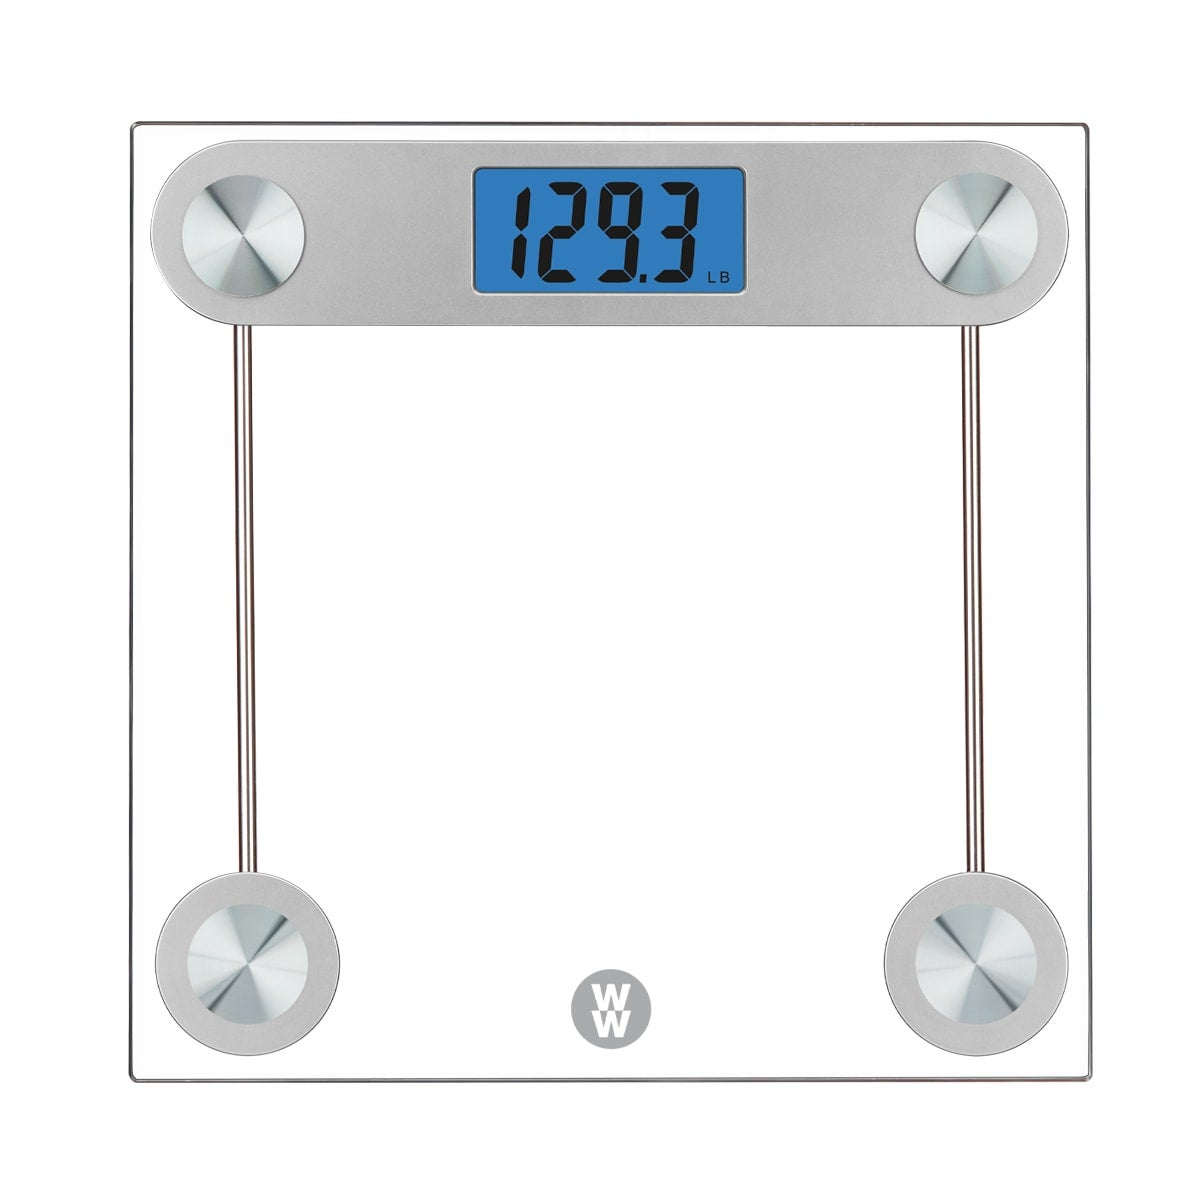 Ww Scales By Conair Digital Glass With, Bathroom Weight Scales